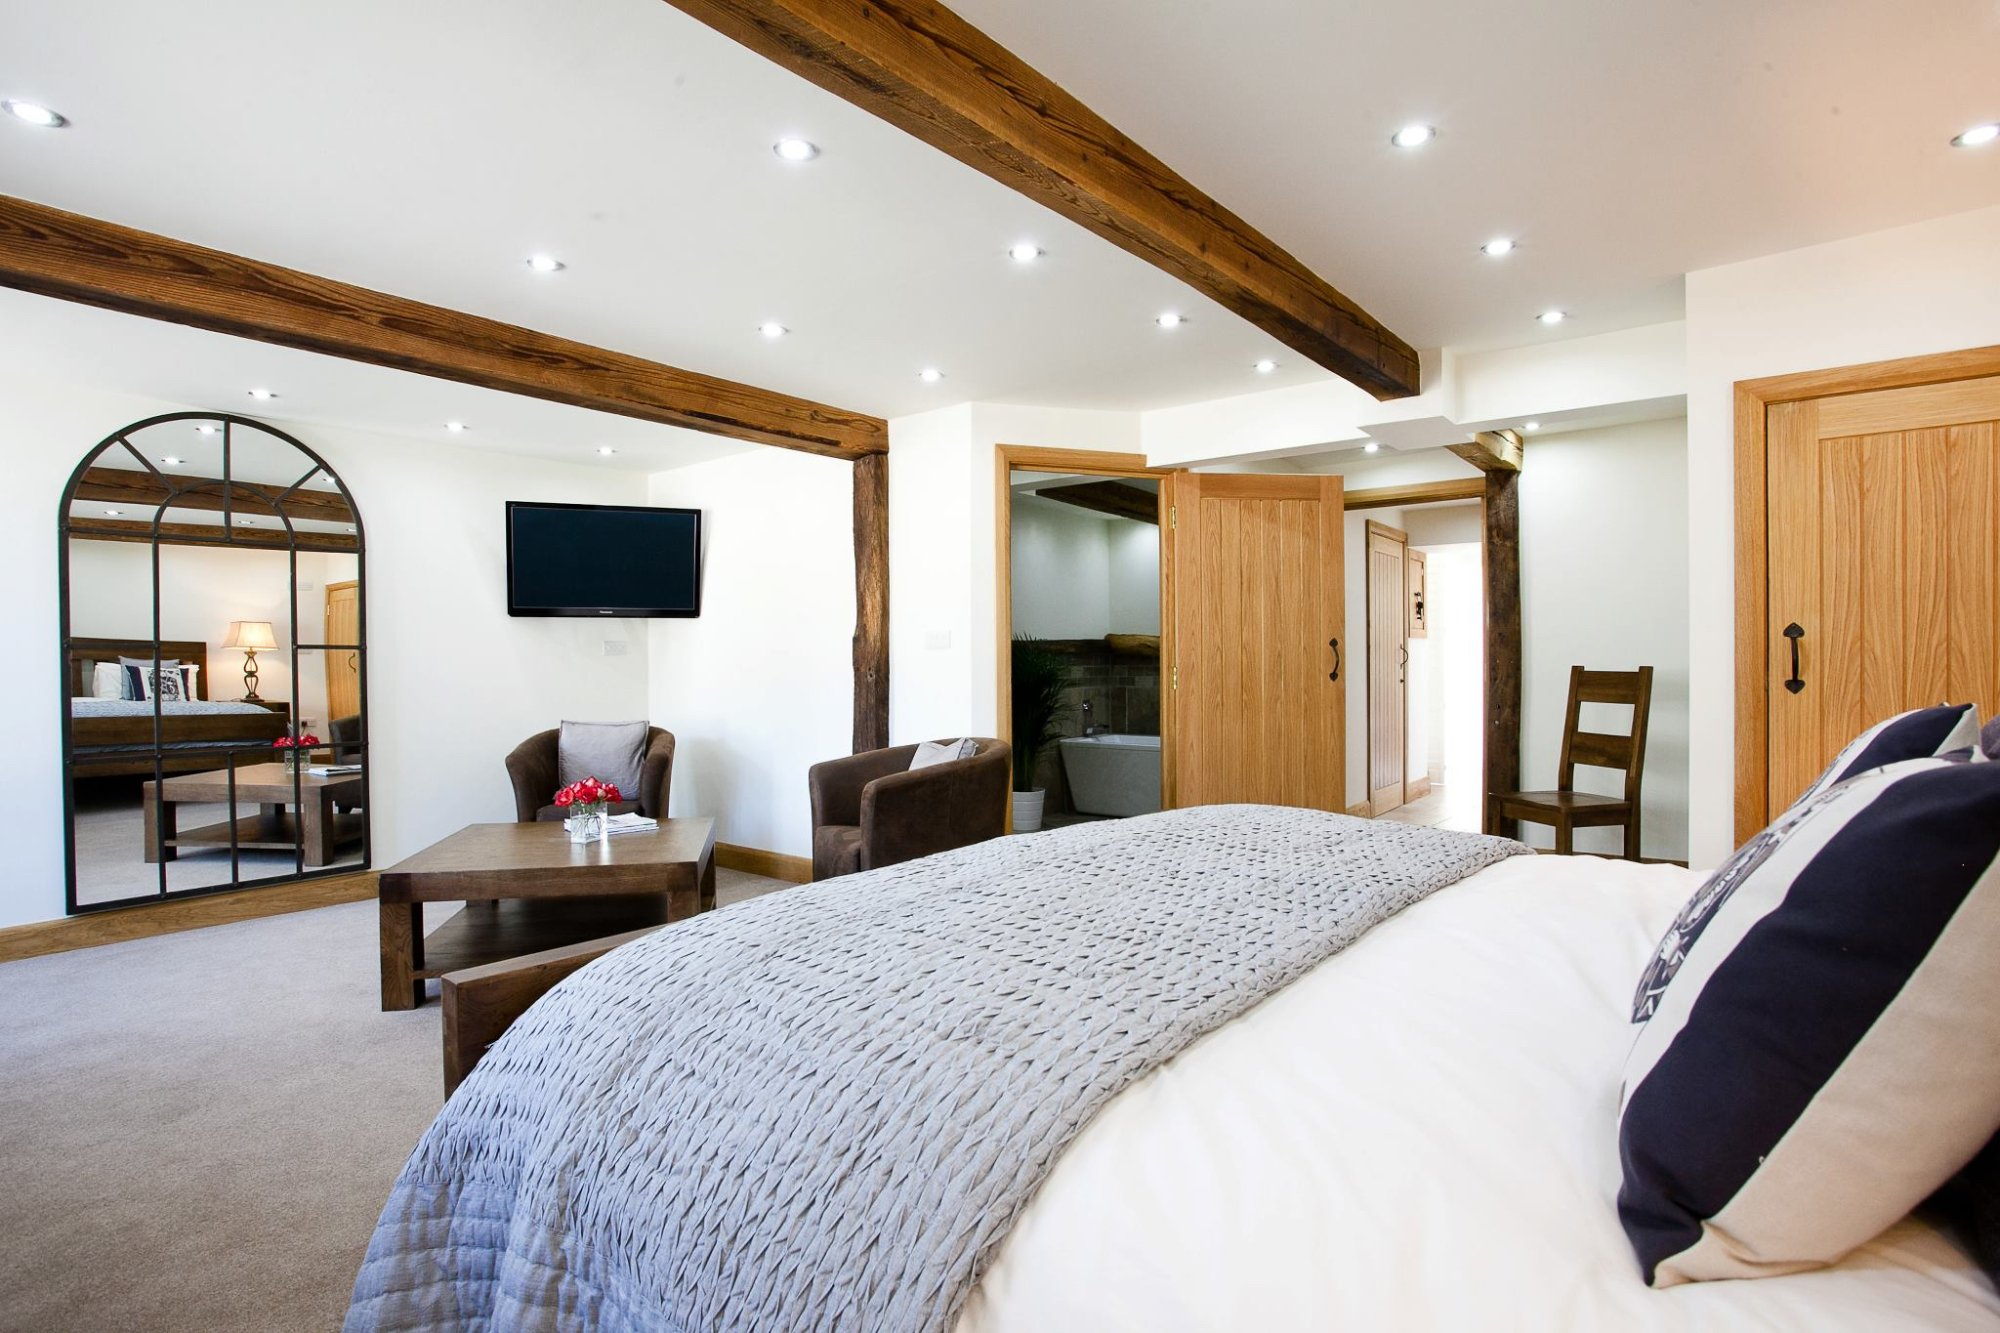 West Marden Farm Bed & Breakfast and Holiday Cottages